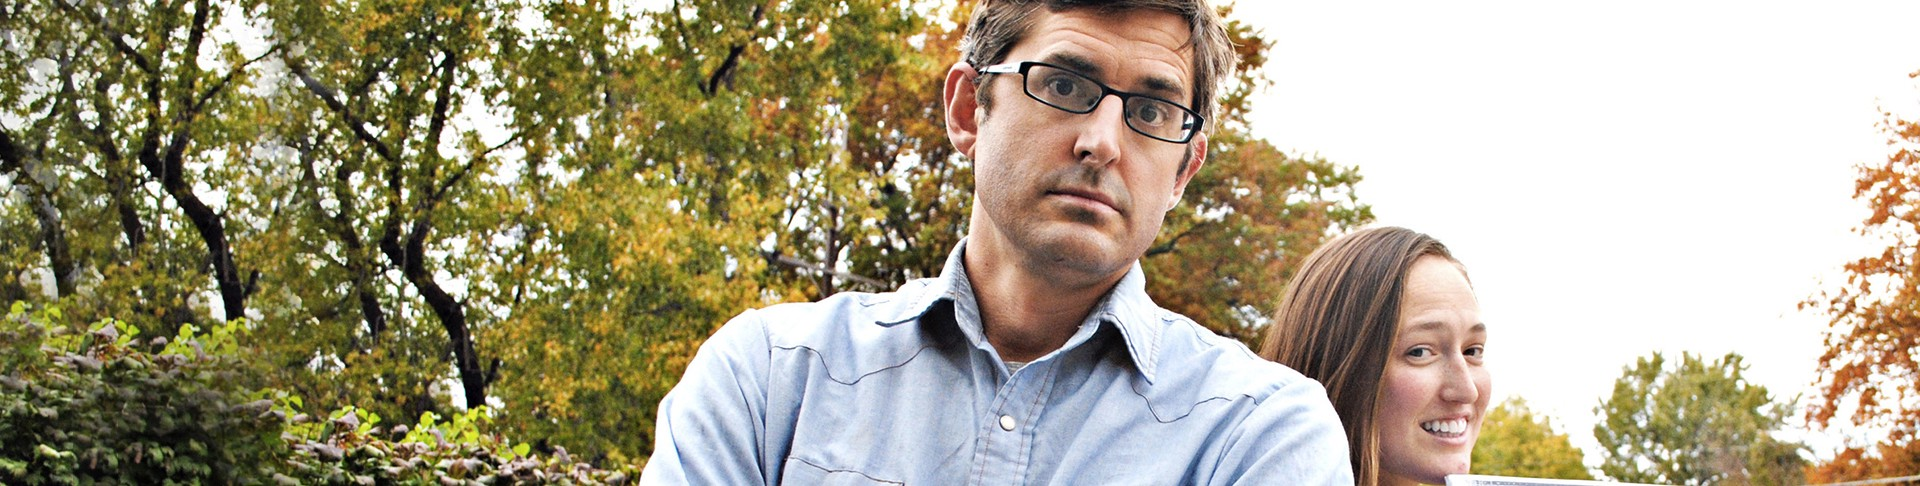 Louis Theroux: The Return of America's Most Hated Family